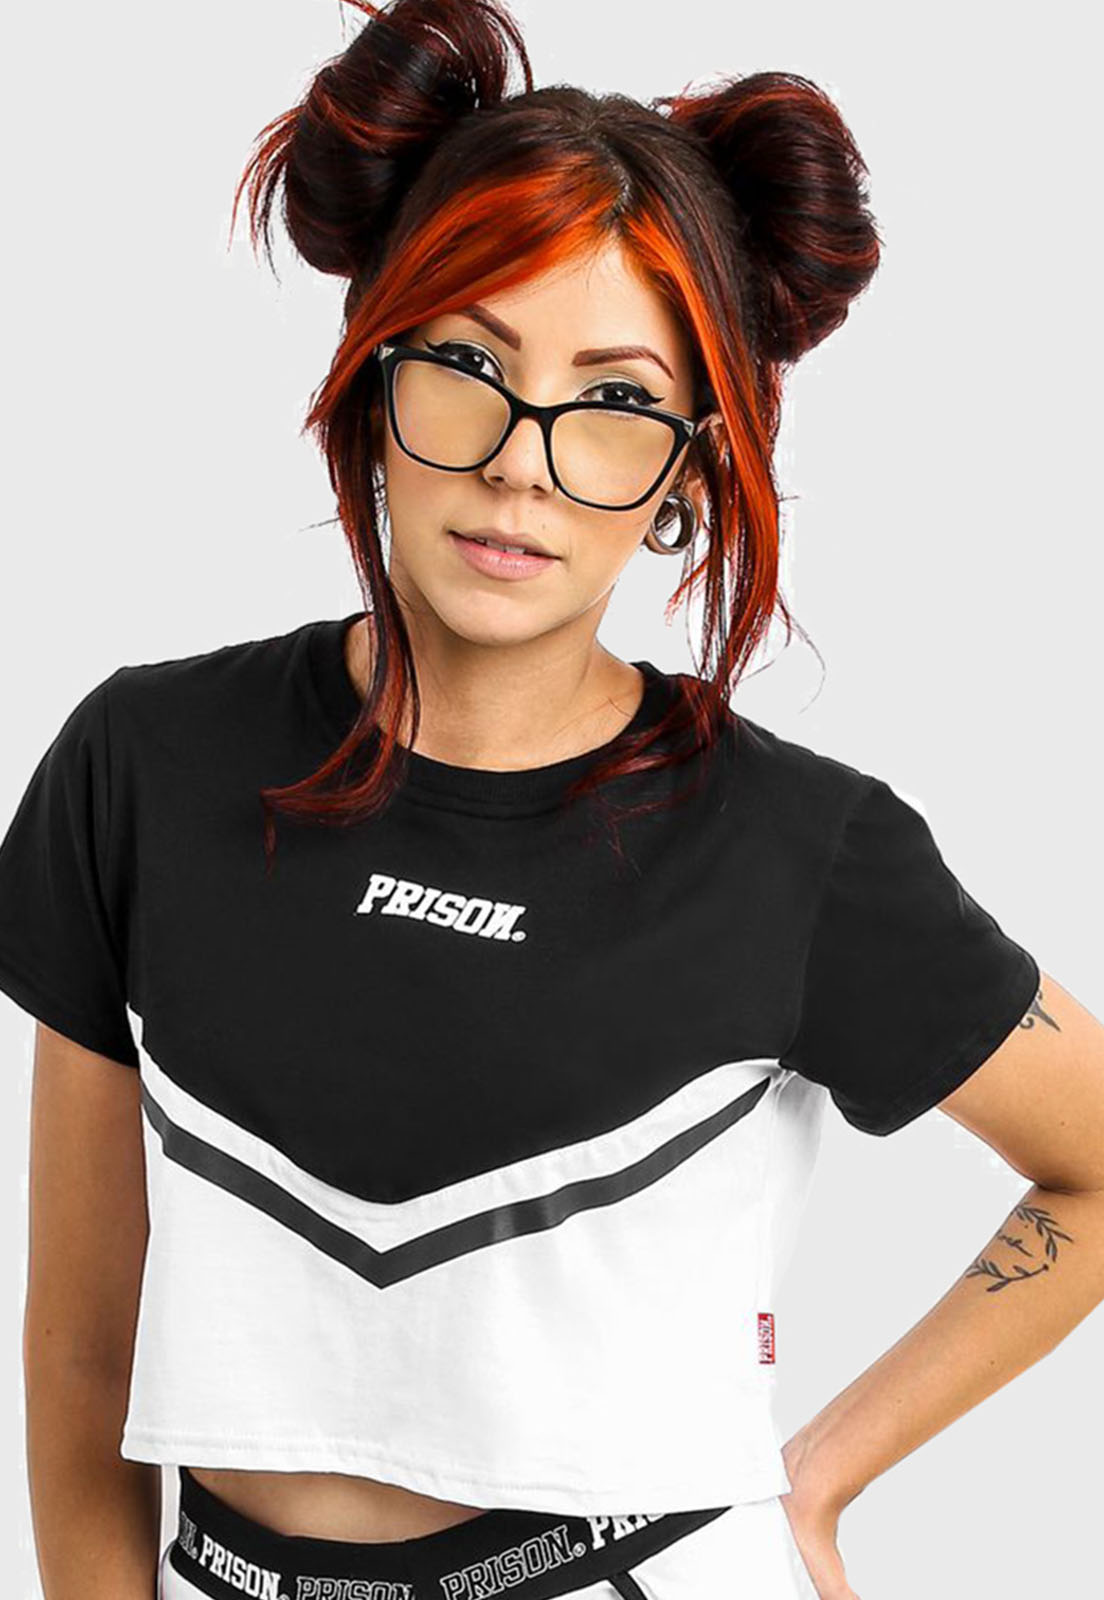 Camiseta Cropped Prison Fancy Black and White